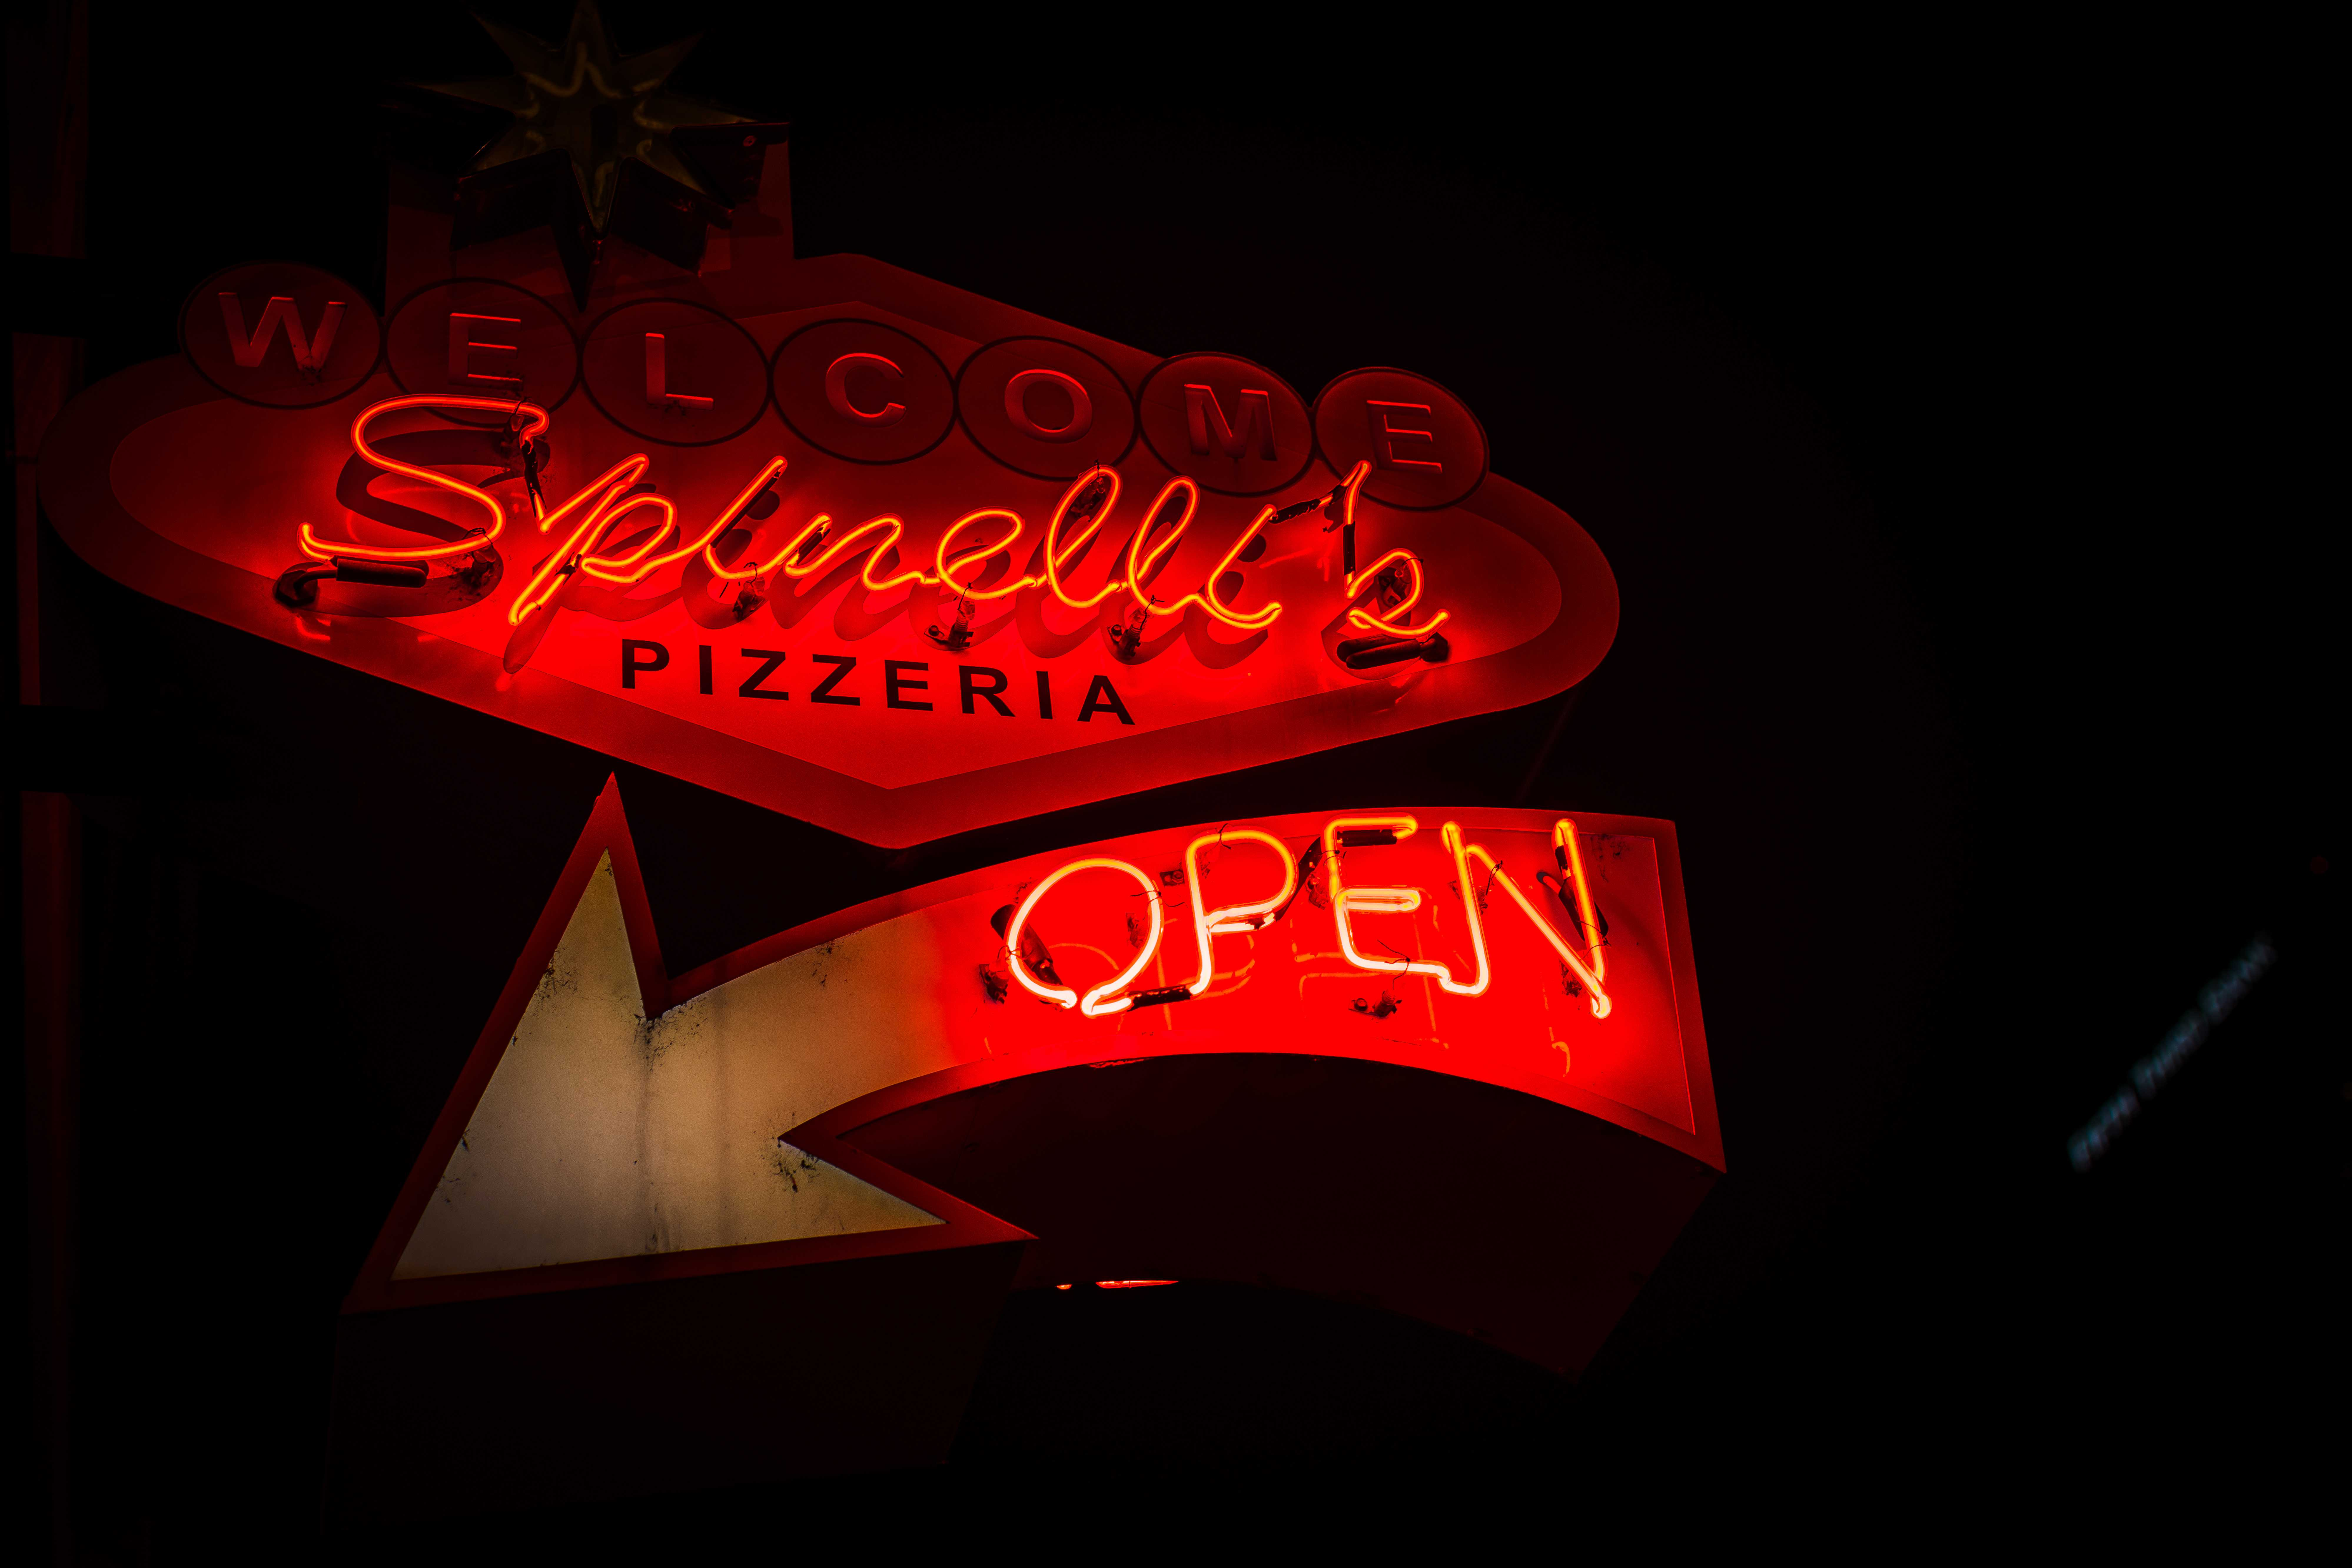 Five local bands will perform tonight at Spinelli's Pizza